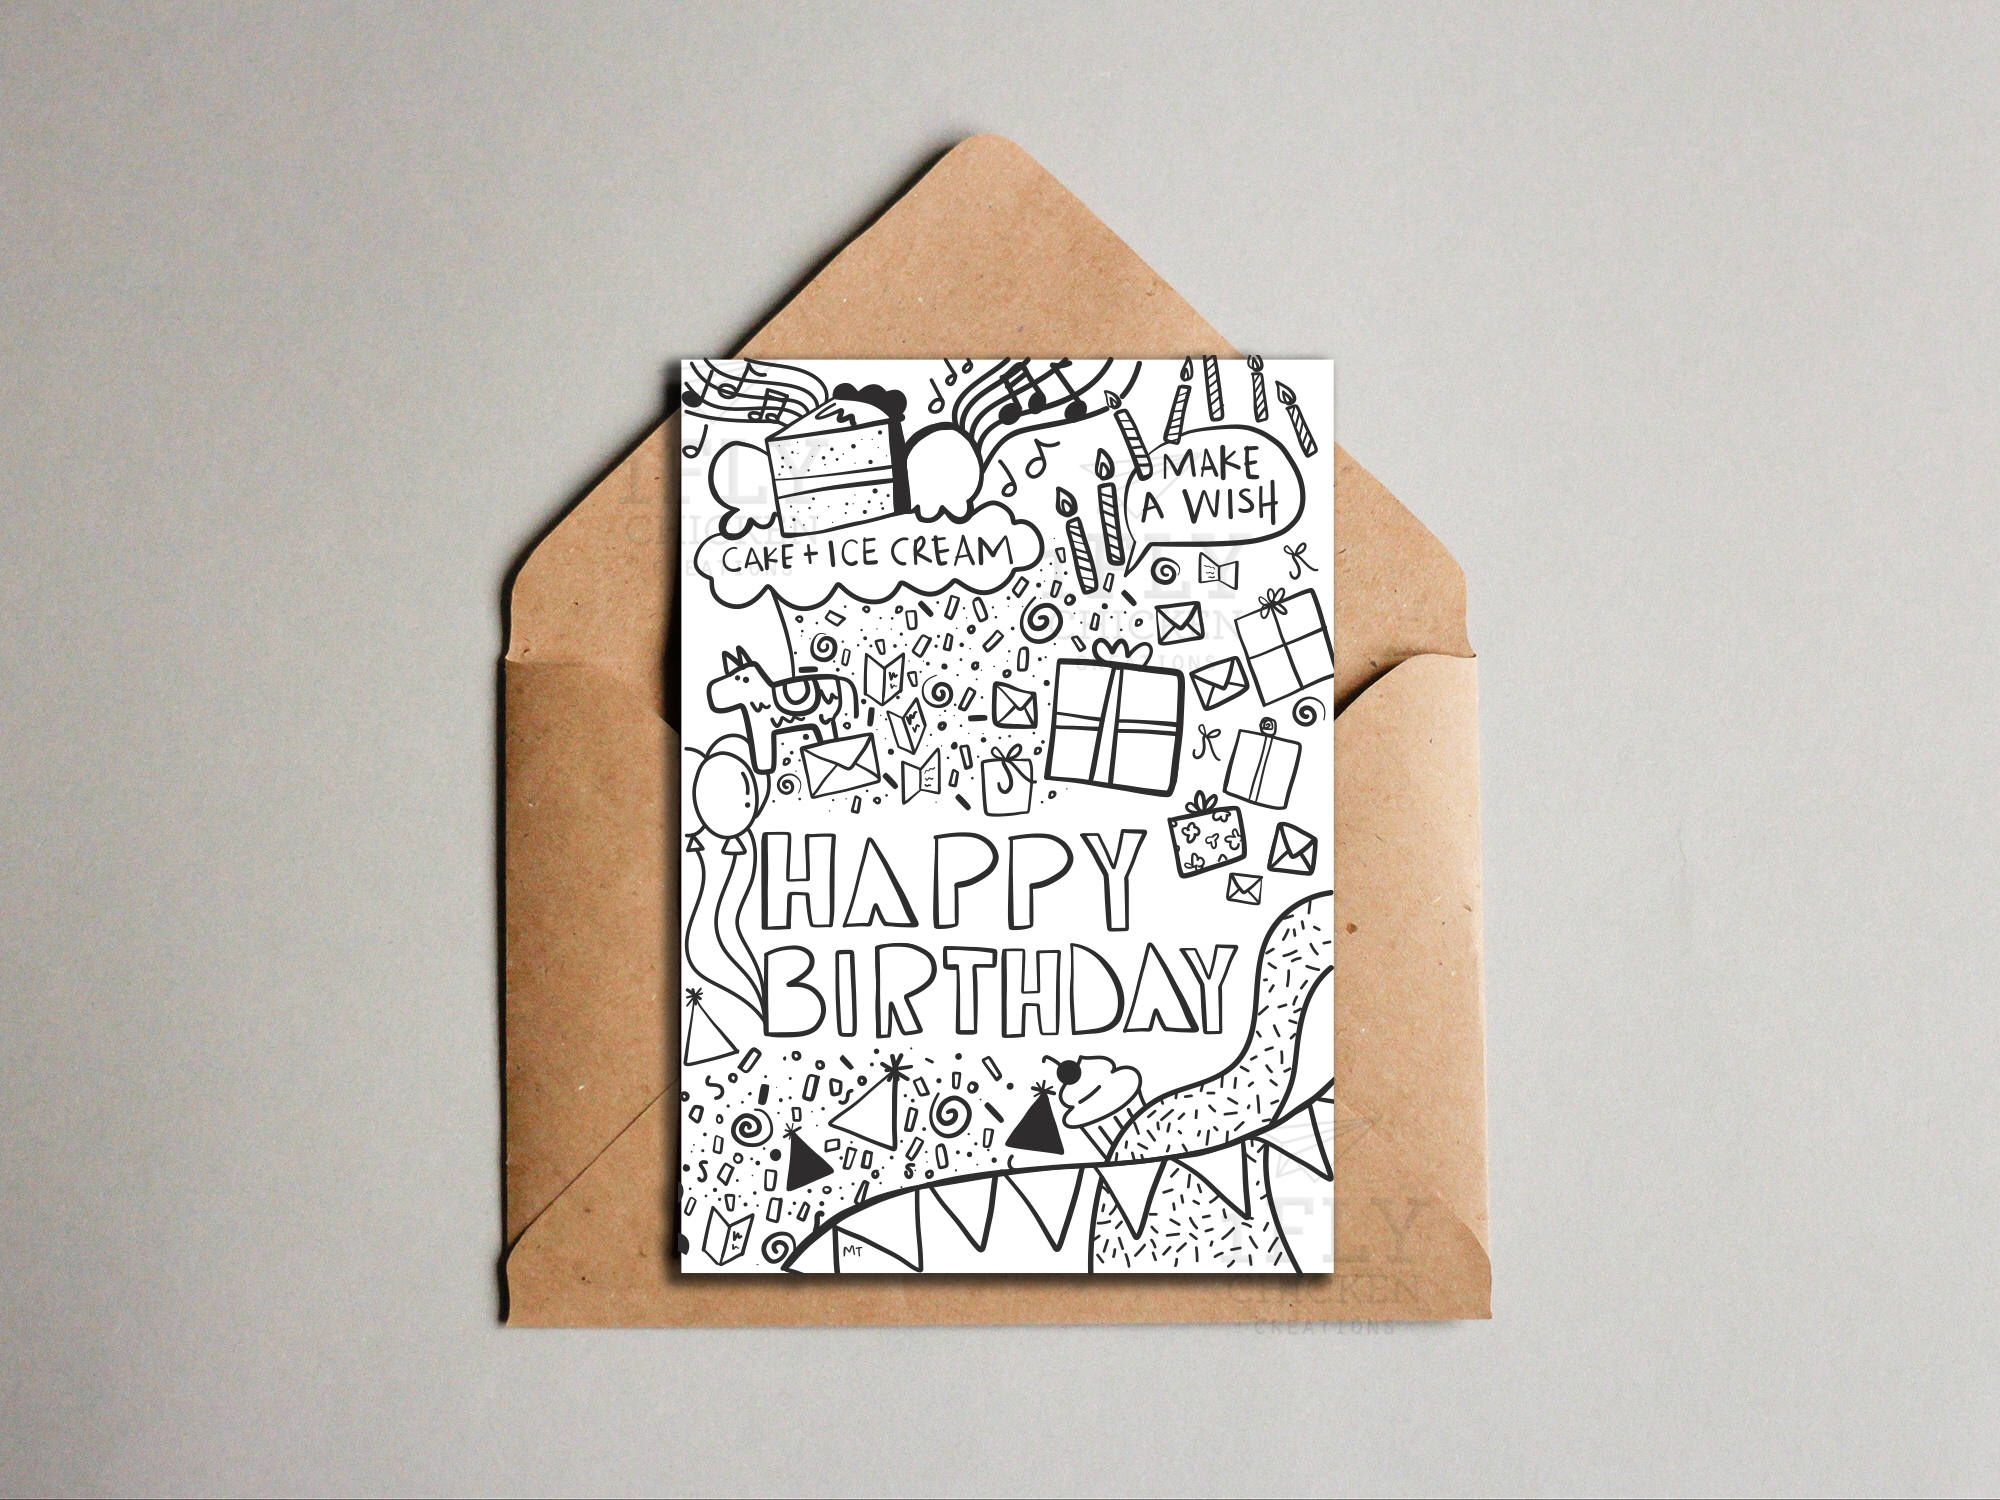 Printable Birthday Card Cool Doodle Drawing Birthday Etsy Birthday Card Printable Cool Doodles Birthday Card Drawing